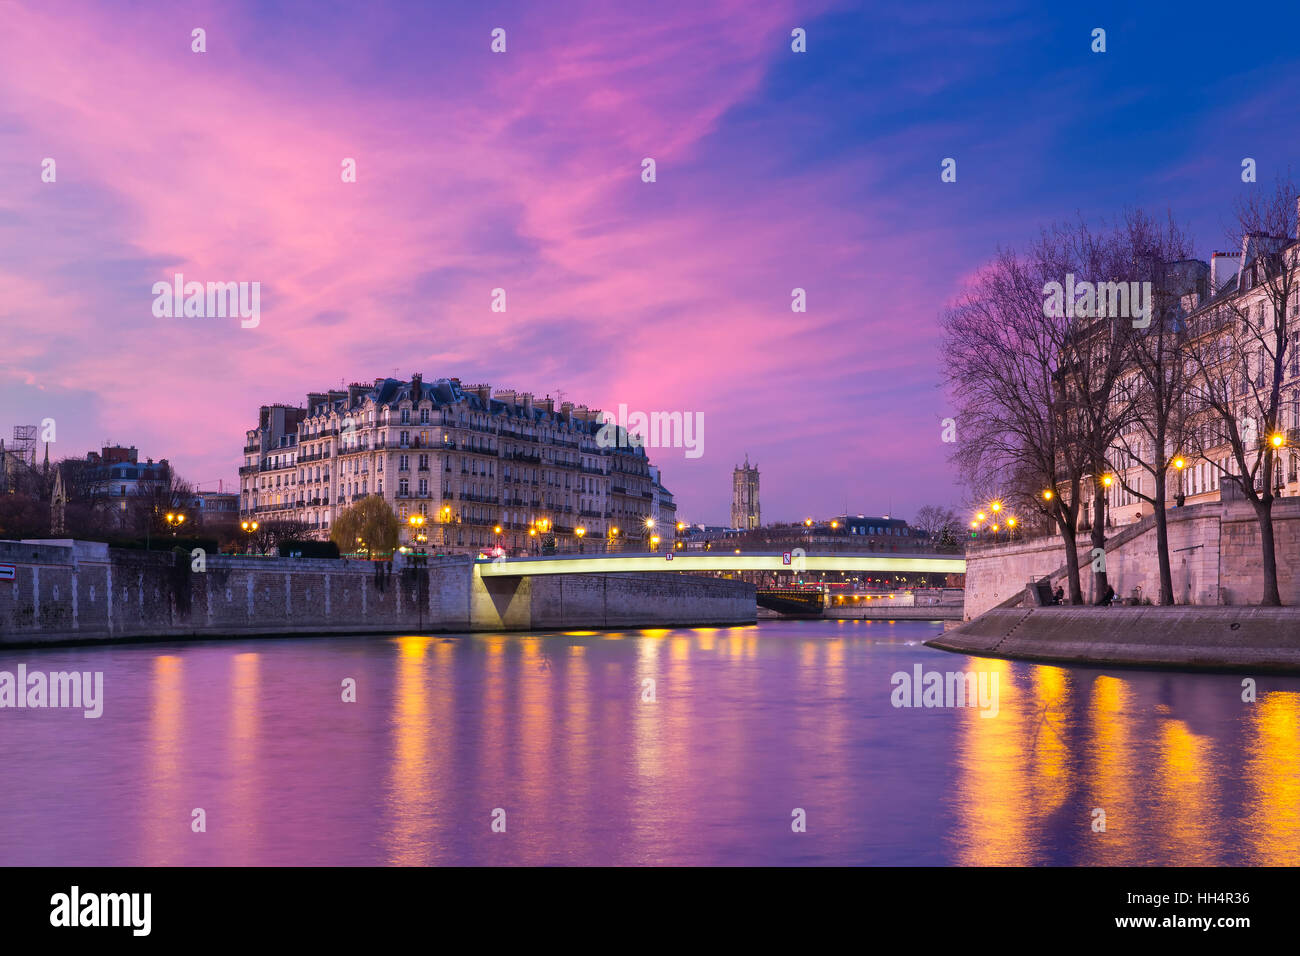 Ile de la Cite at sunset, Paris, France - Stock Image